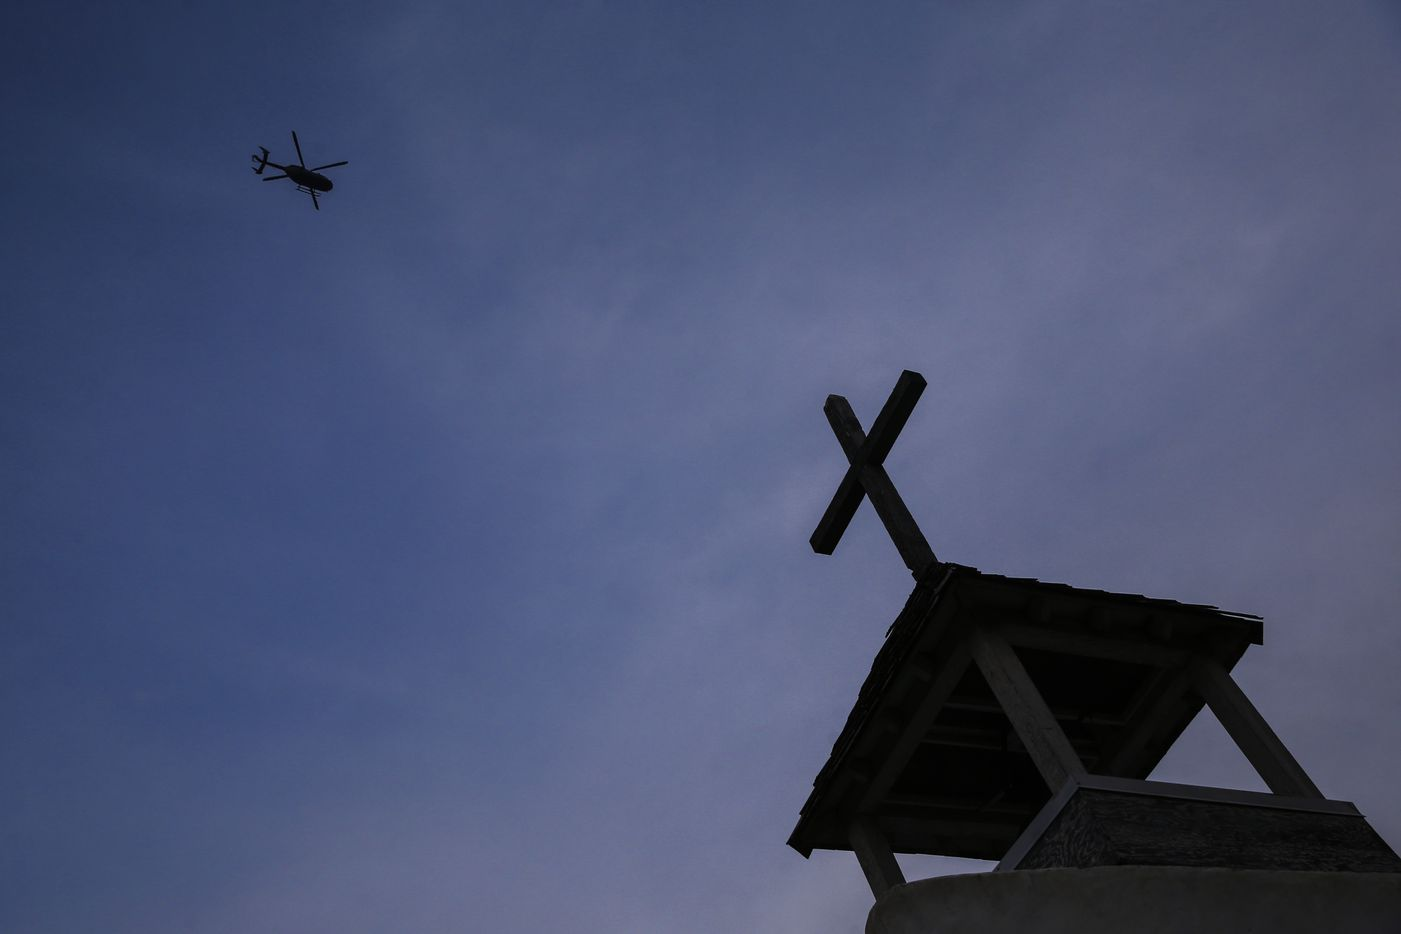 A Department of Homeland Security helicopter passes over the historic La Lomita chapel while patrolling the border near Mission, Texas.